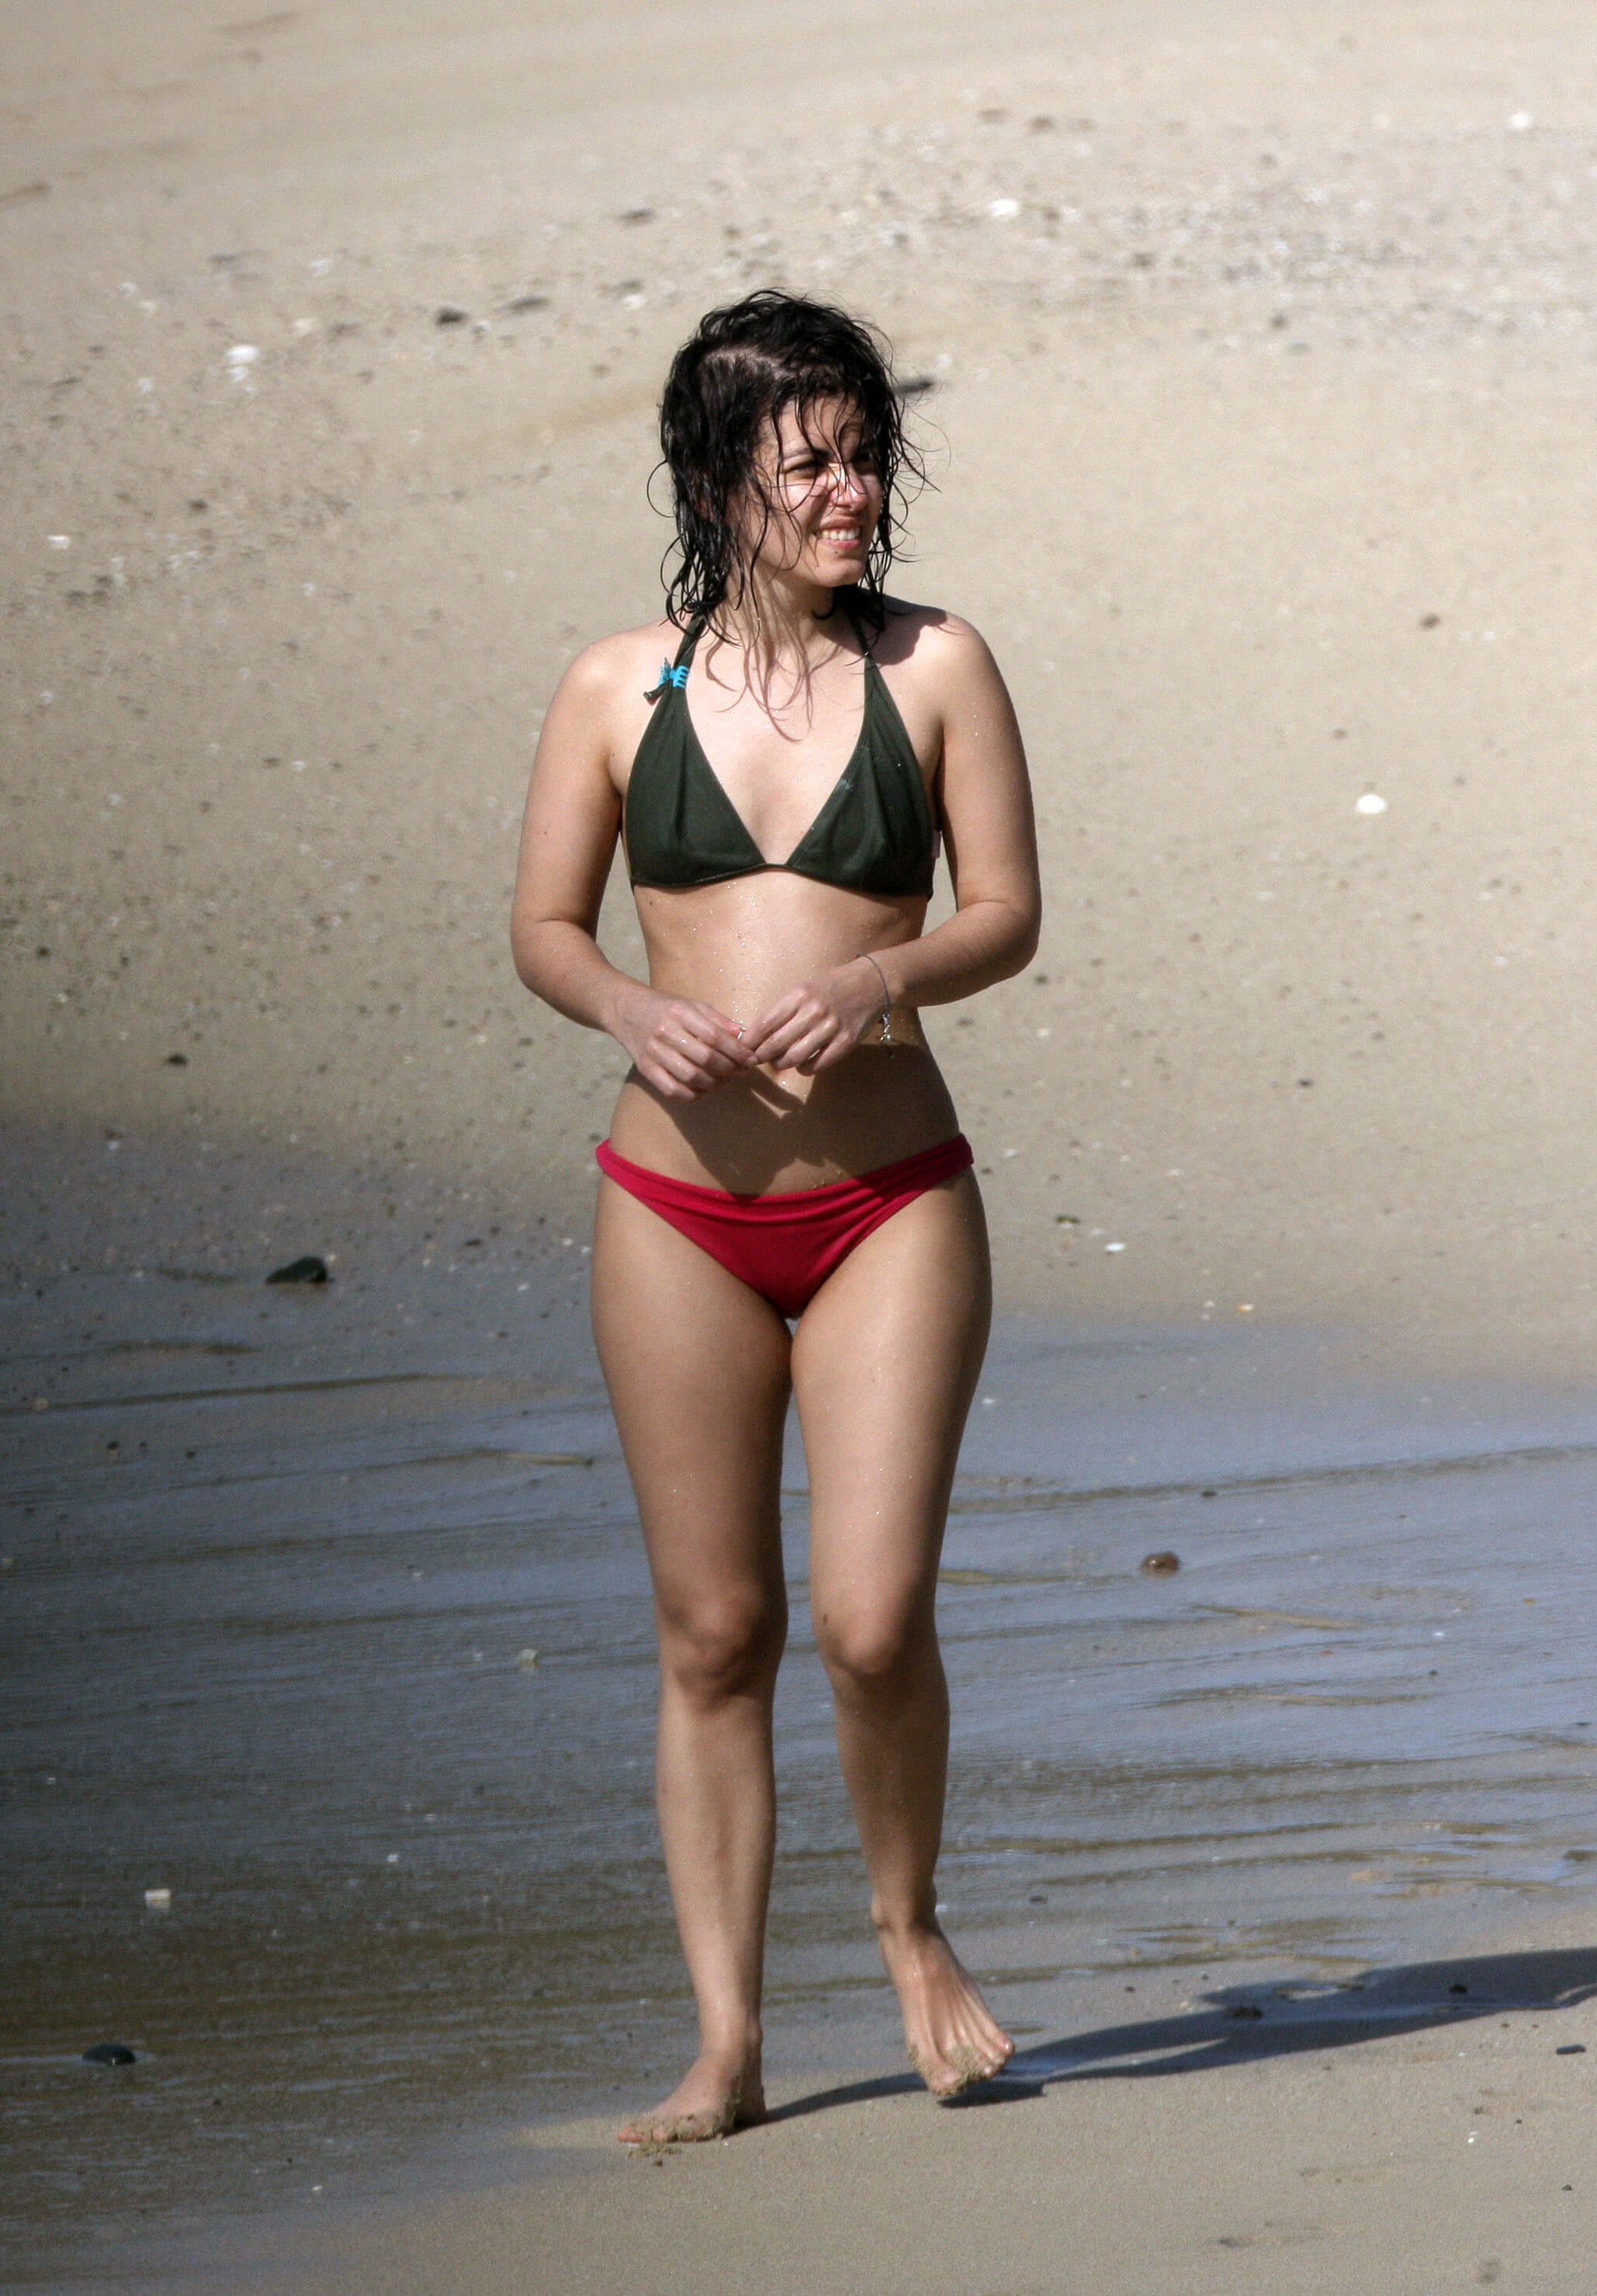 49 Hot Pictures Of Katie Melua Which Will Make Your Hands